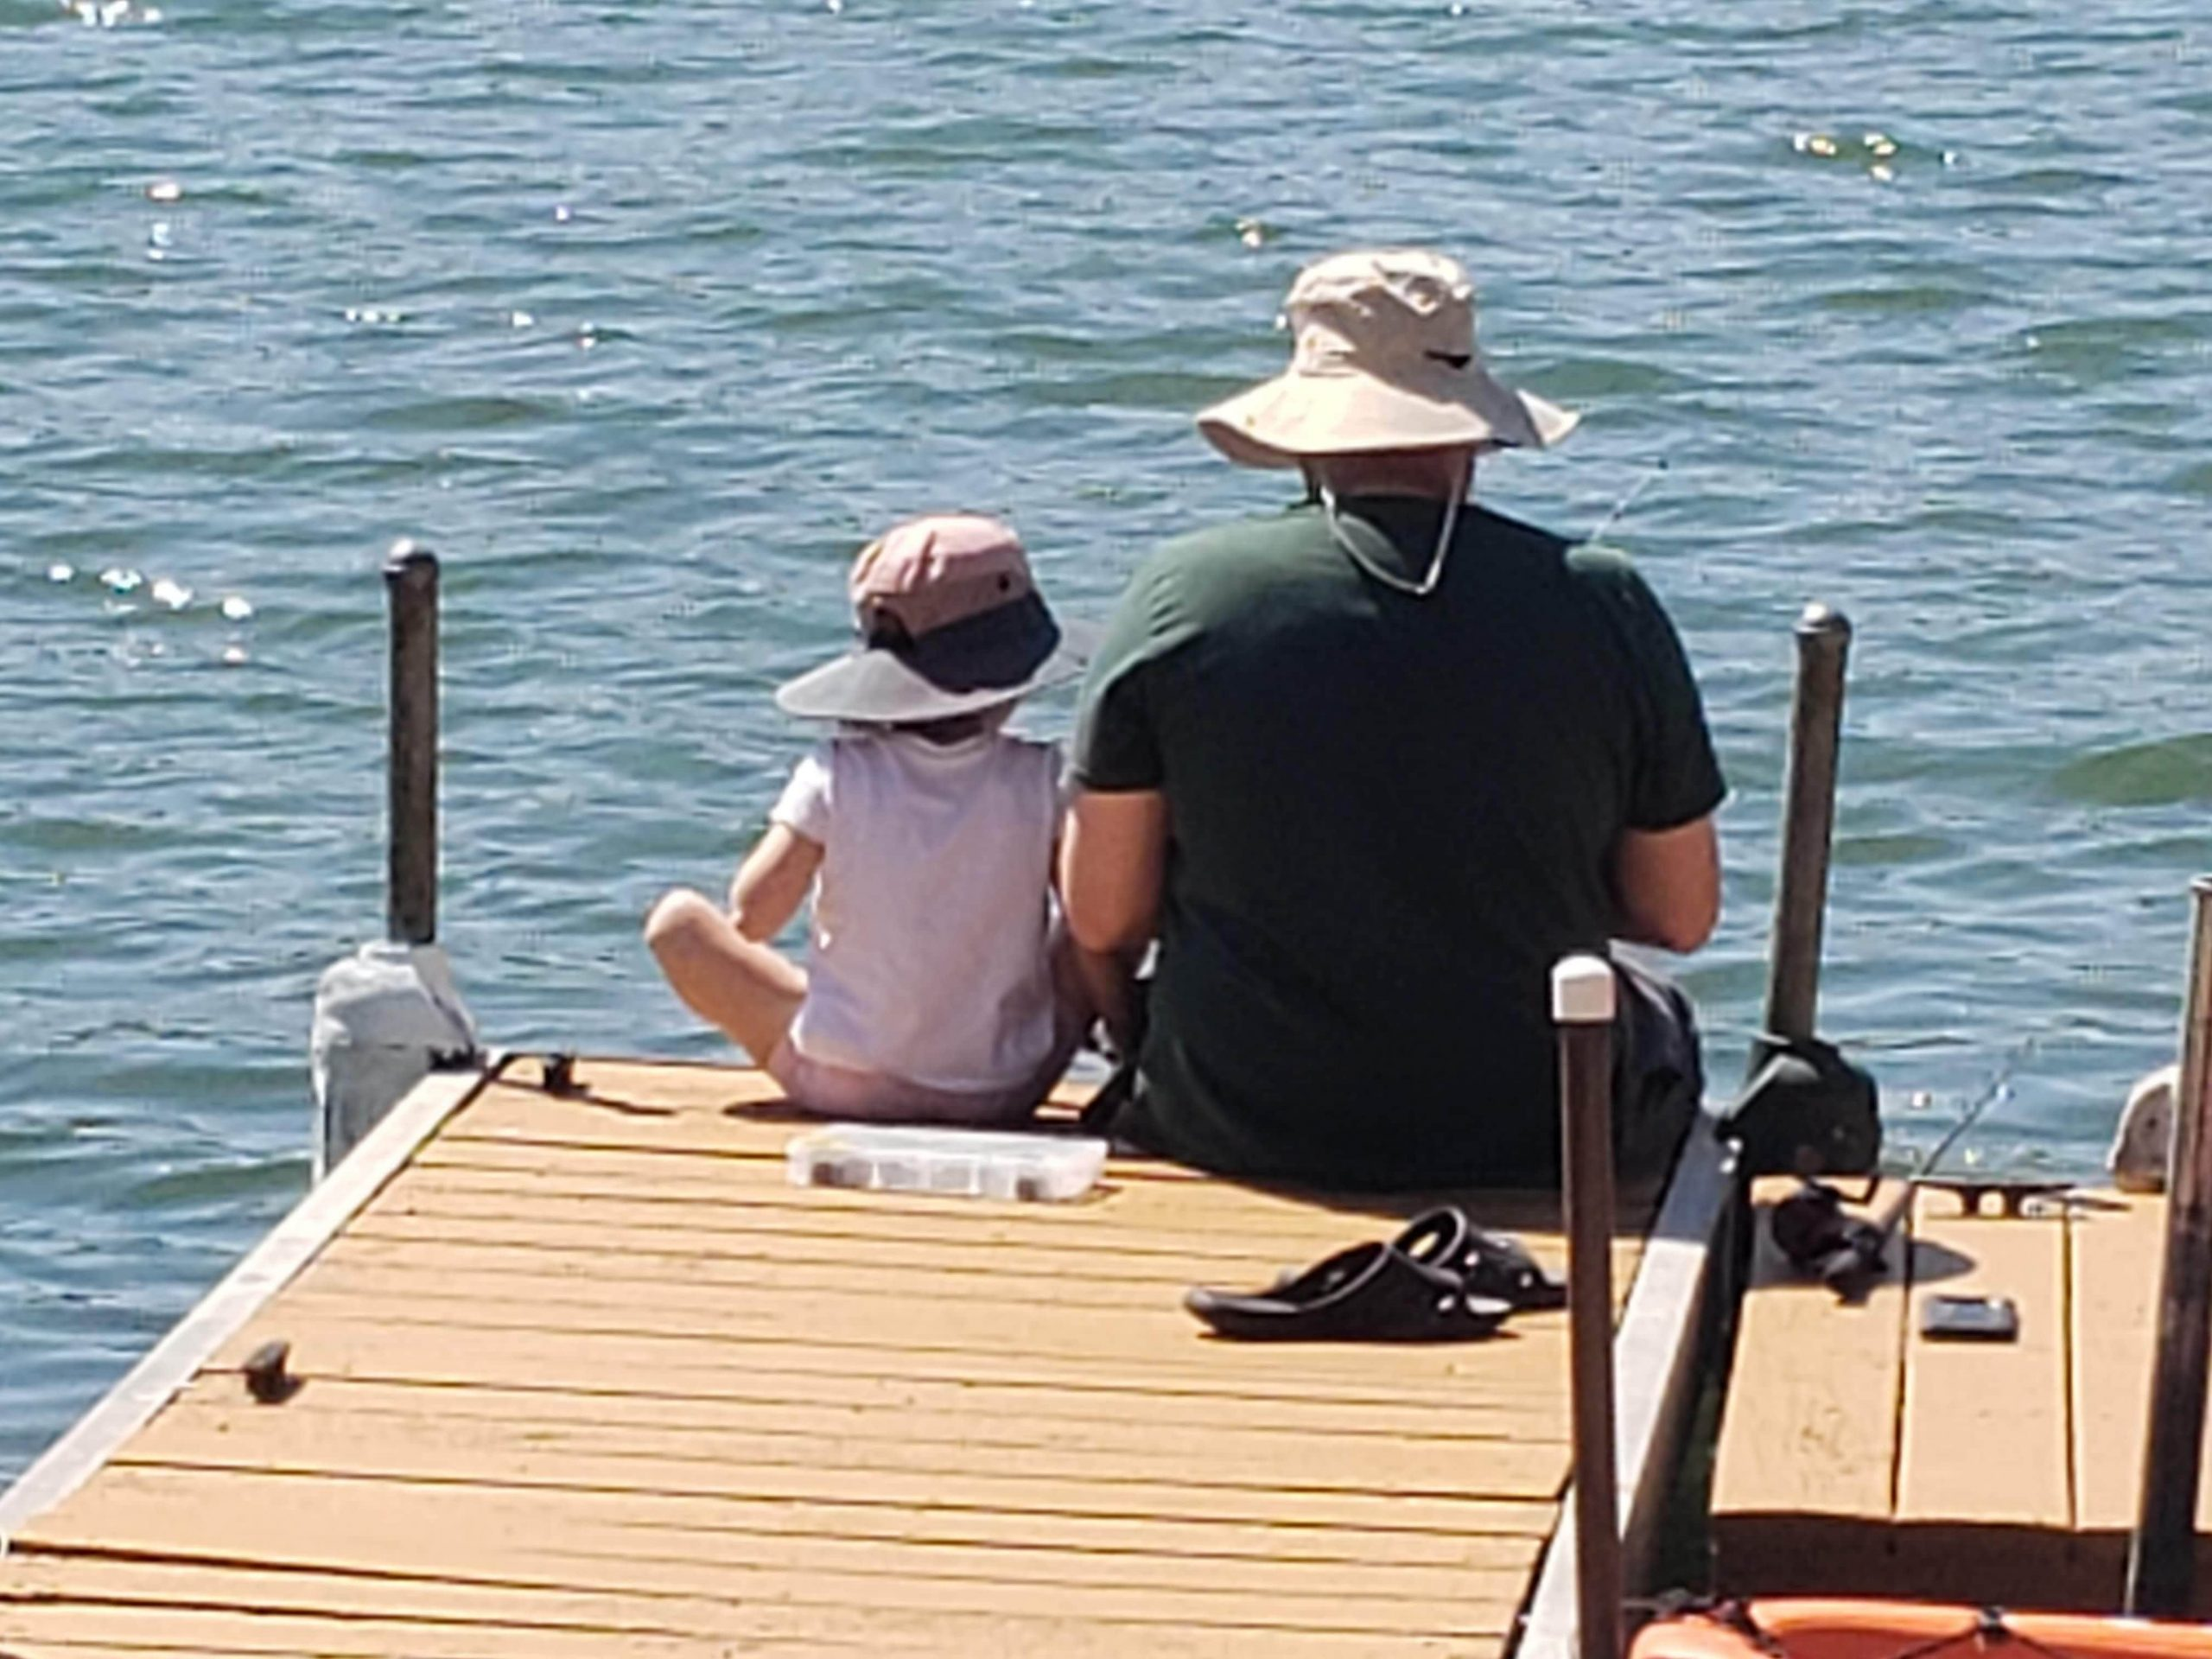 Fishing helps father, daughter bond while isolating during pandemic crisis